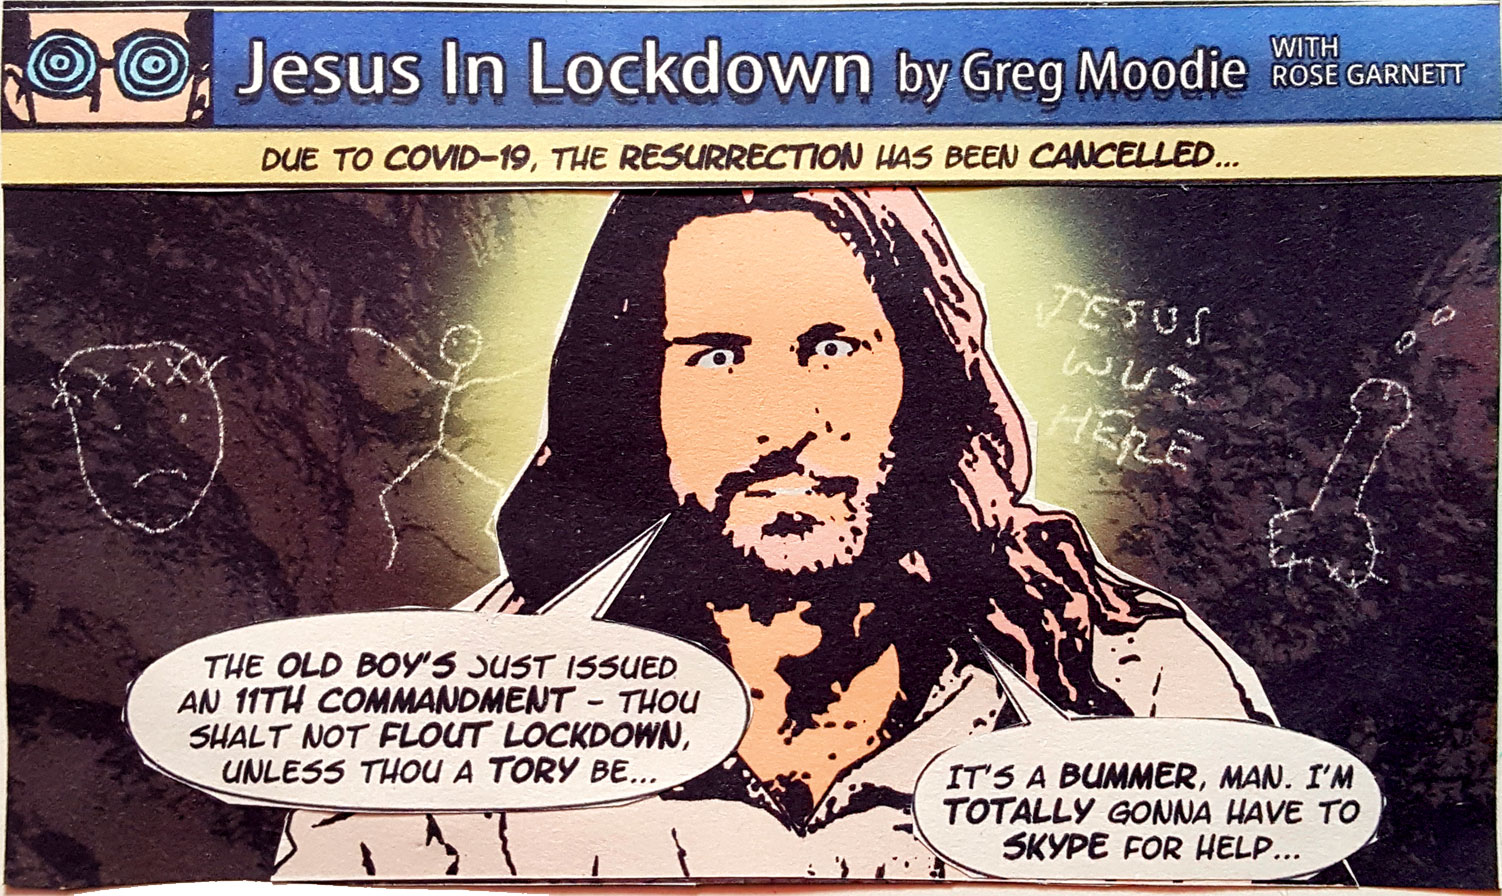 Jesus In Lockdown